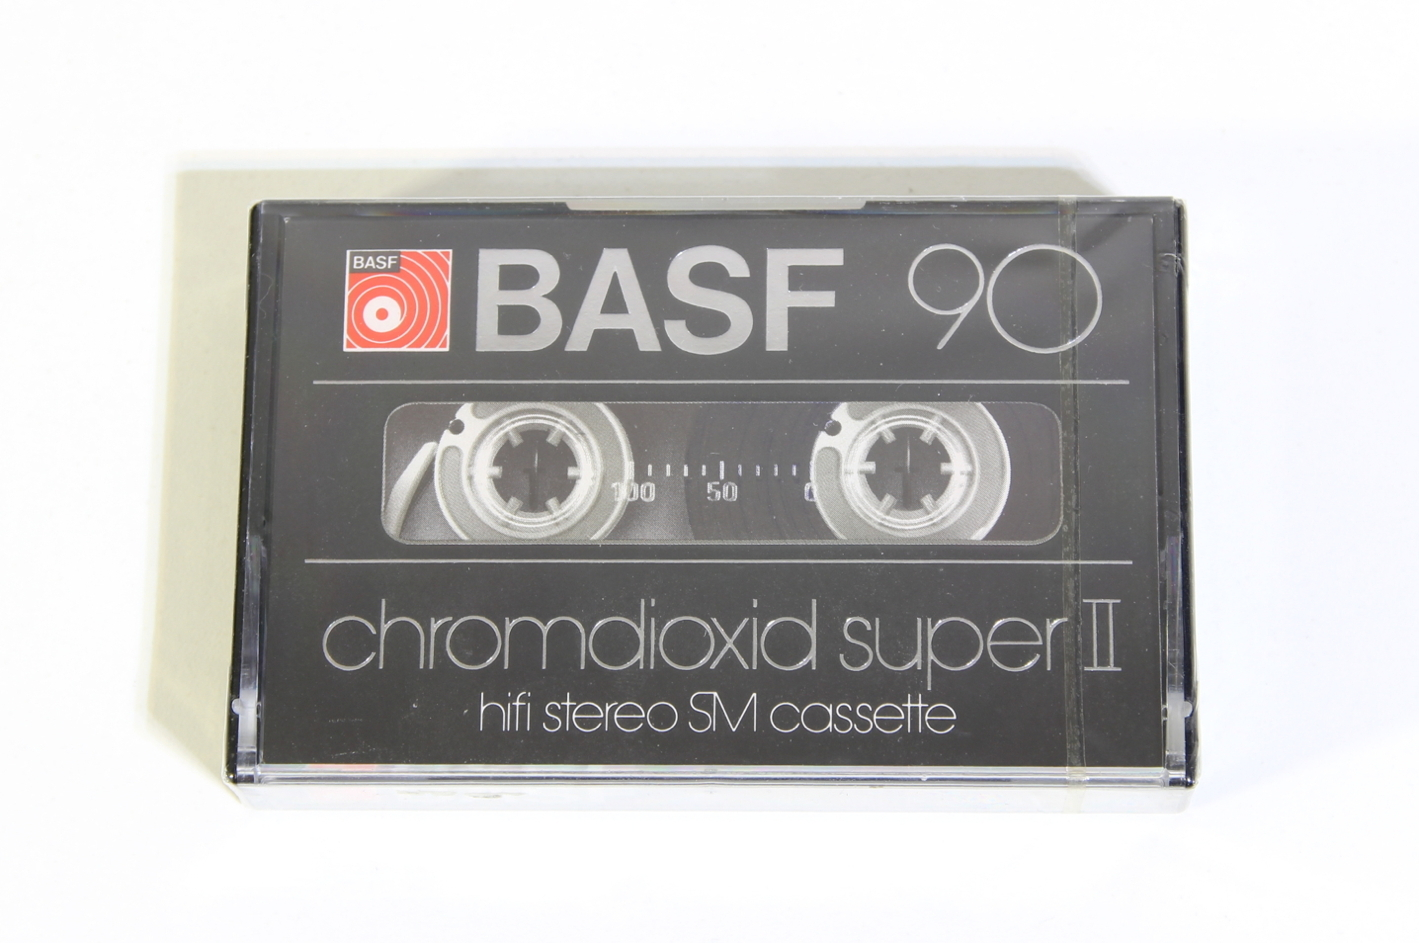 BASF 90 Chromdioxid Super II